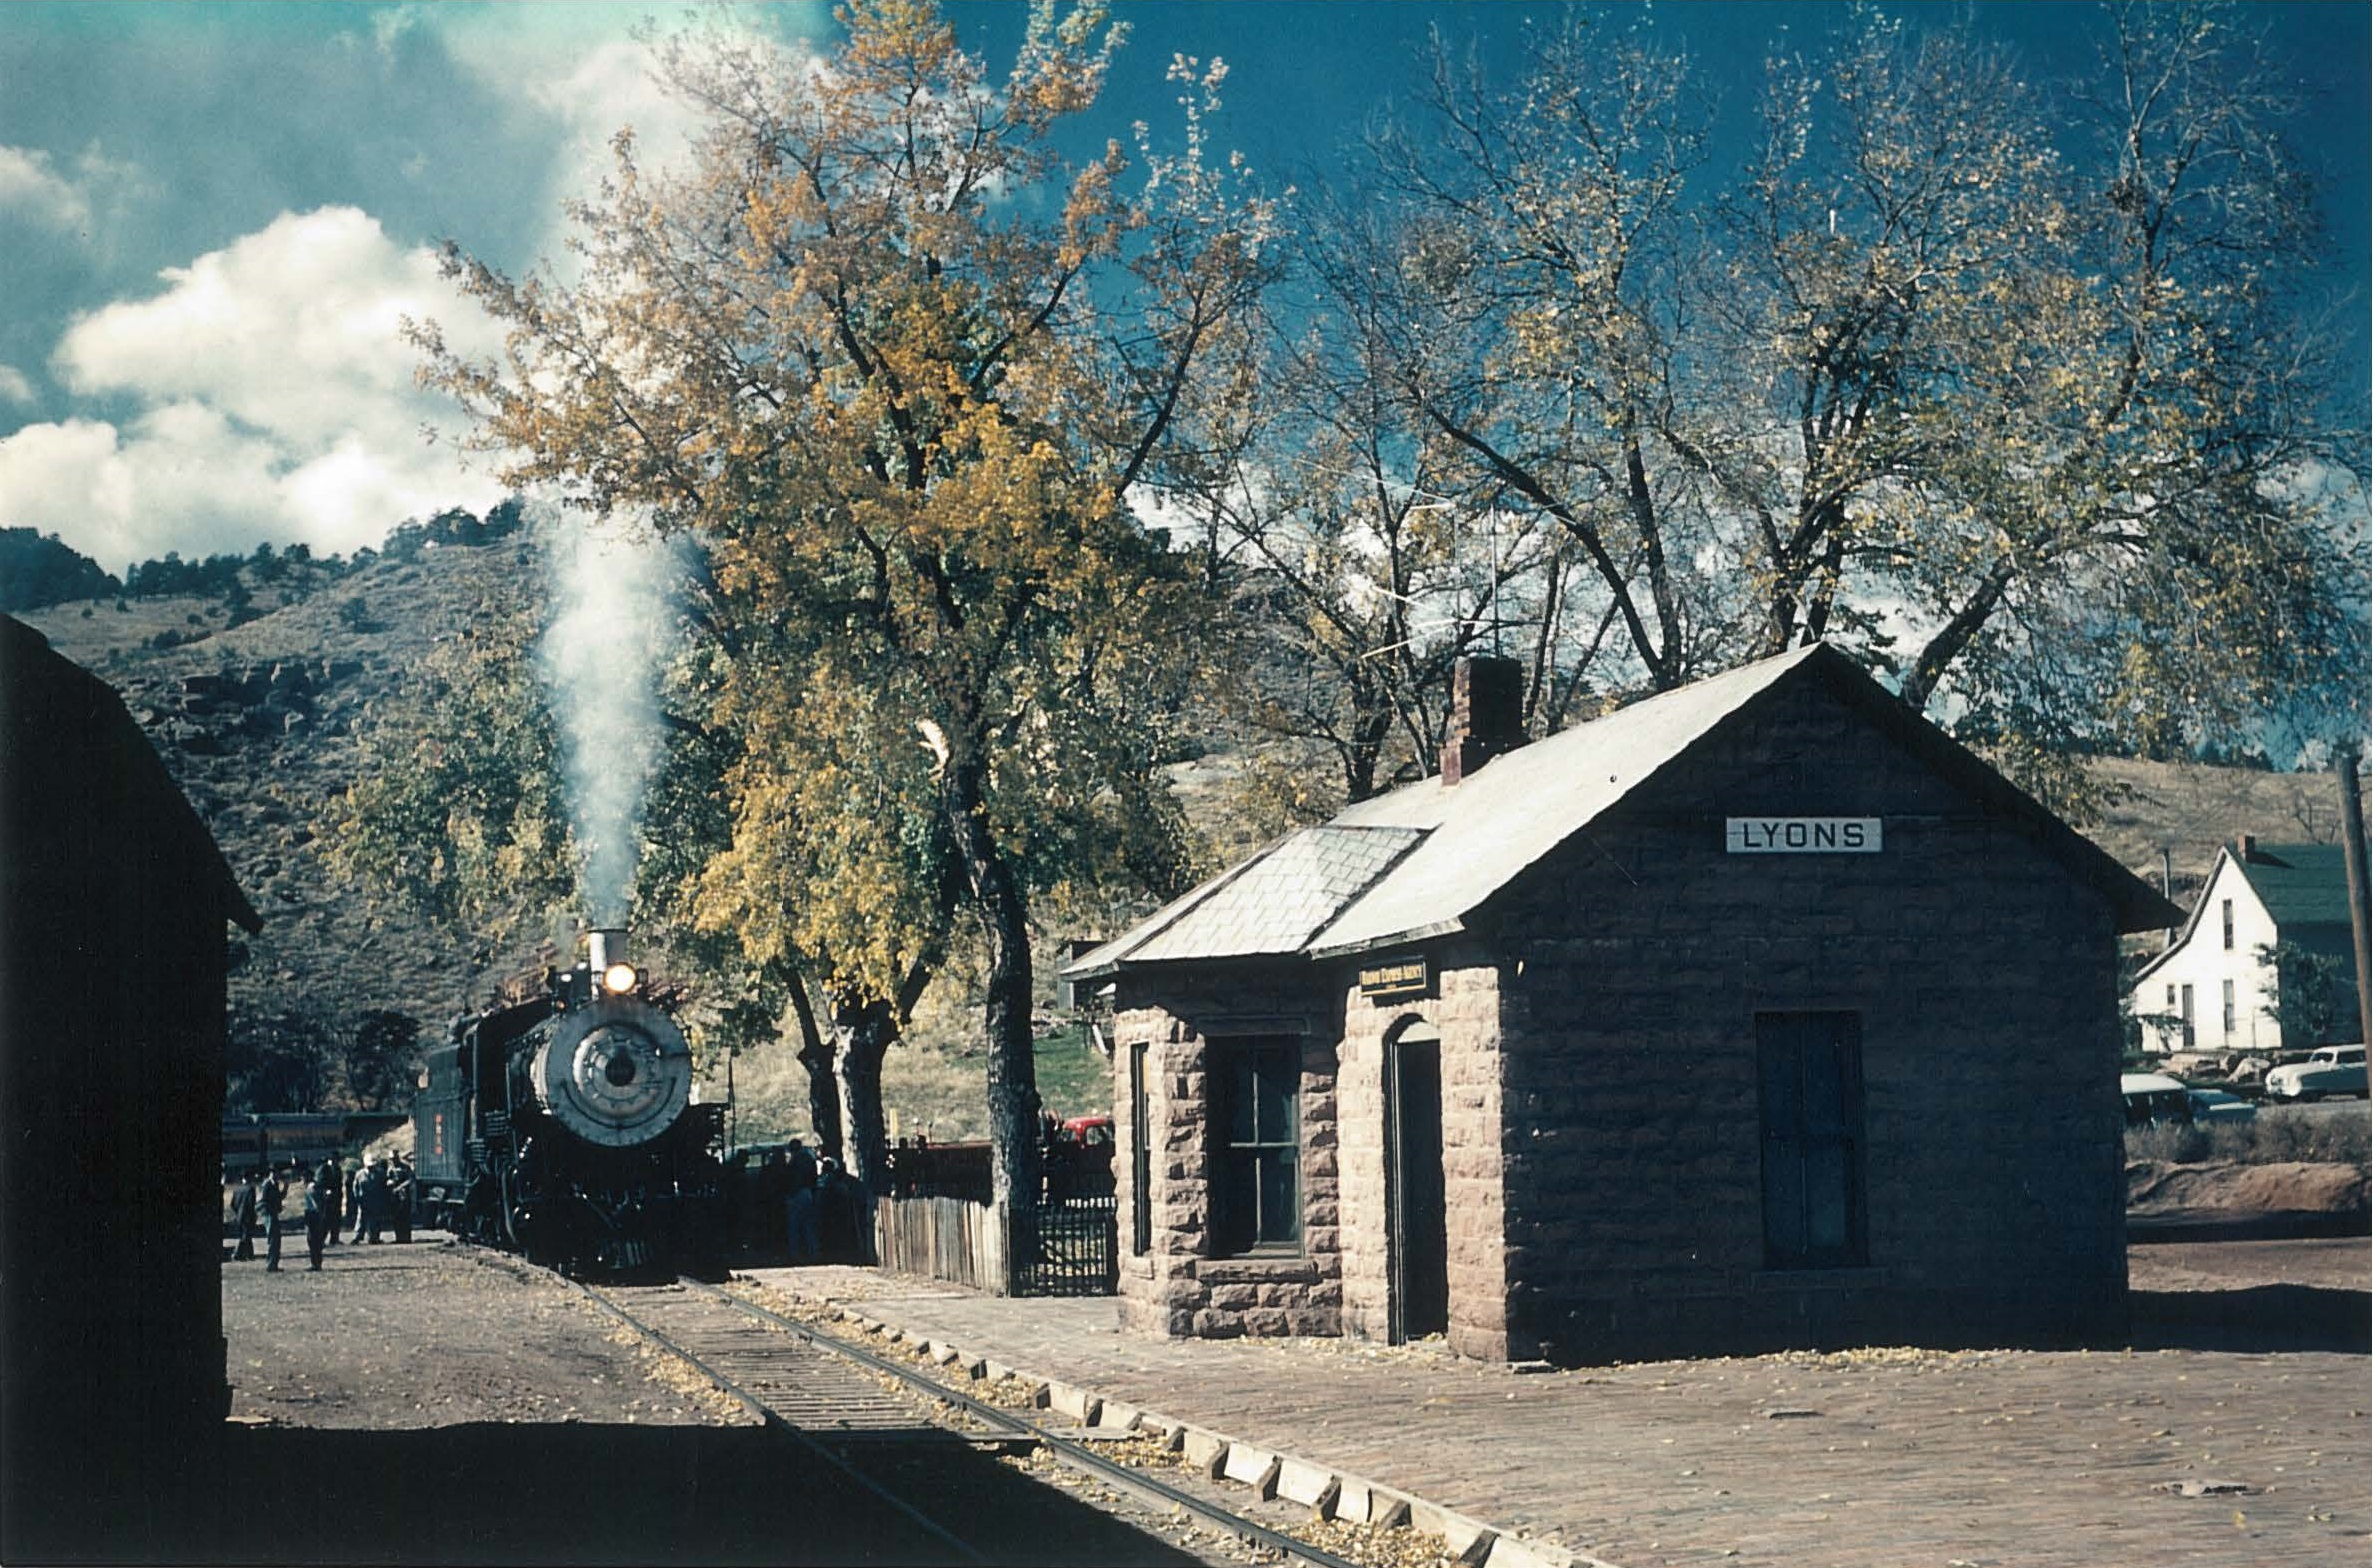 Train at Depot, photo by Richard Lind est. 1962.jpg